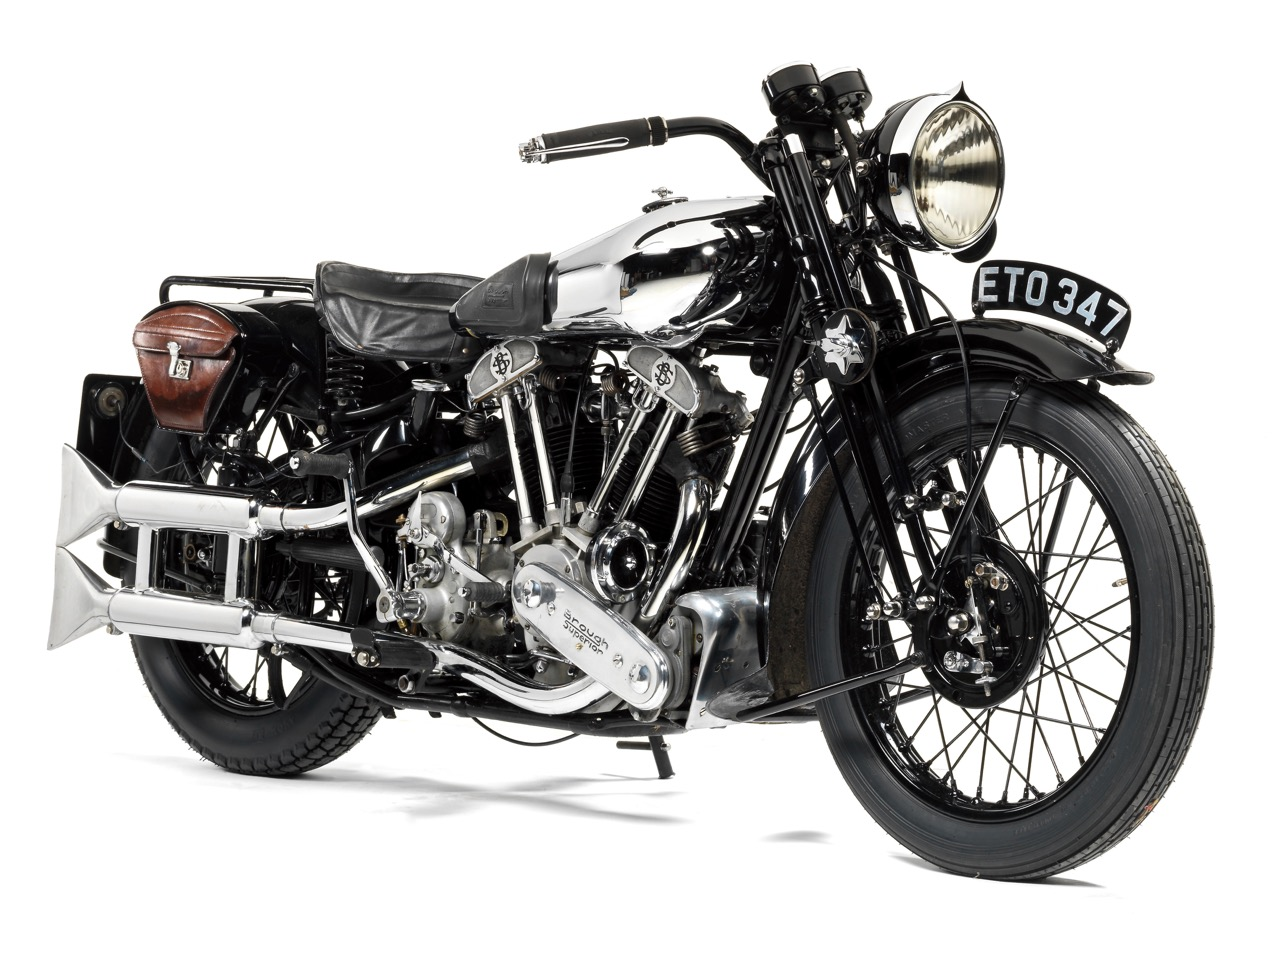 1939 Brough Superior 982cc SS100 sells for $177,523